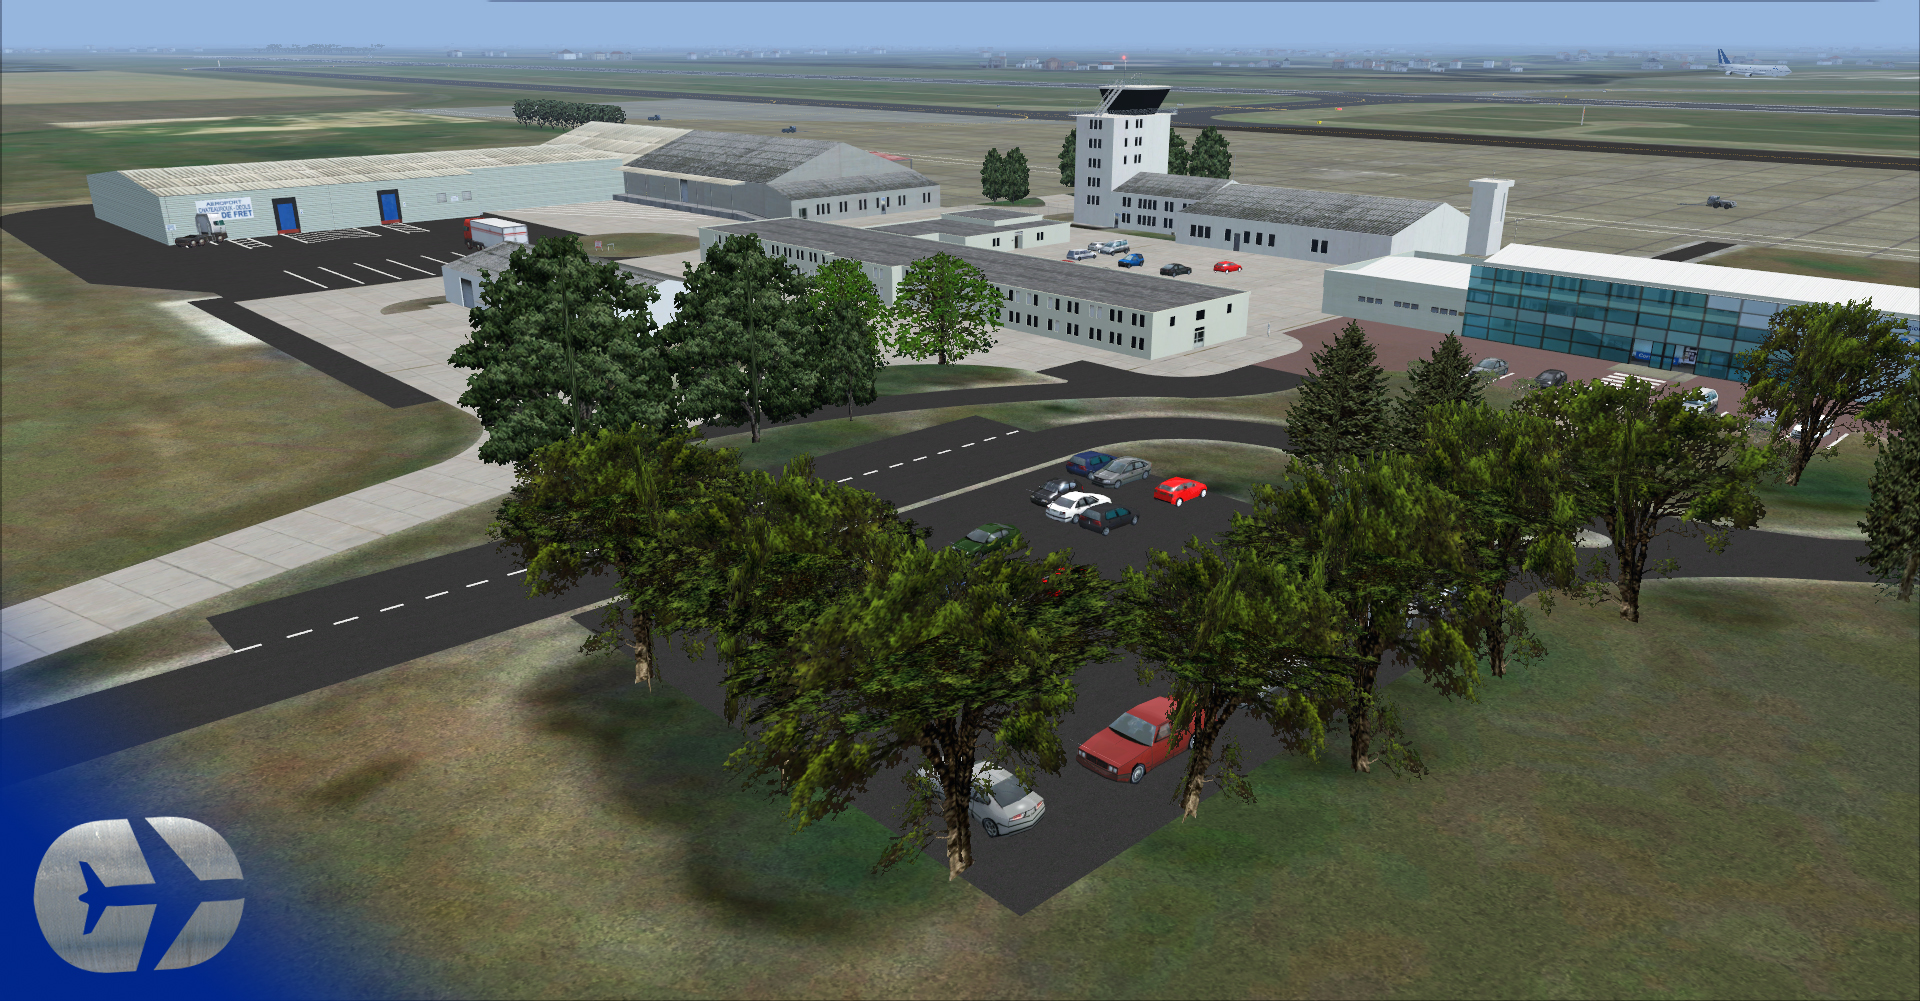 SIMCREATIONS - CHATEAUROUX DEOLS AIRPORT FSX/P3D